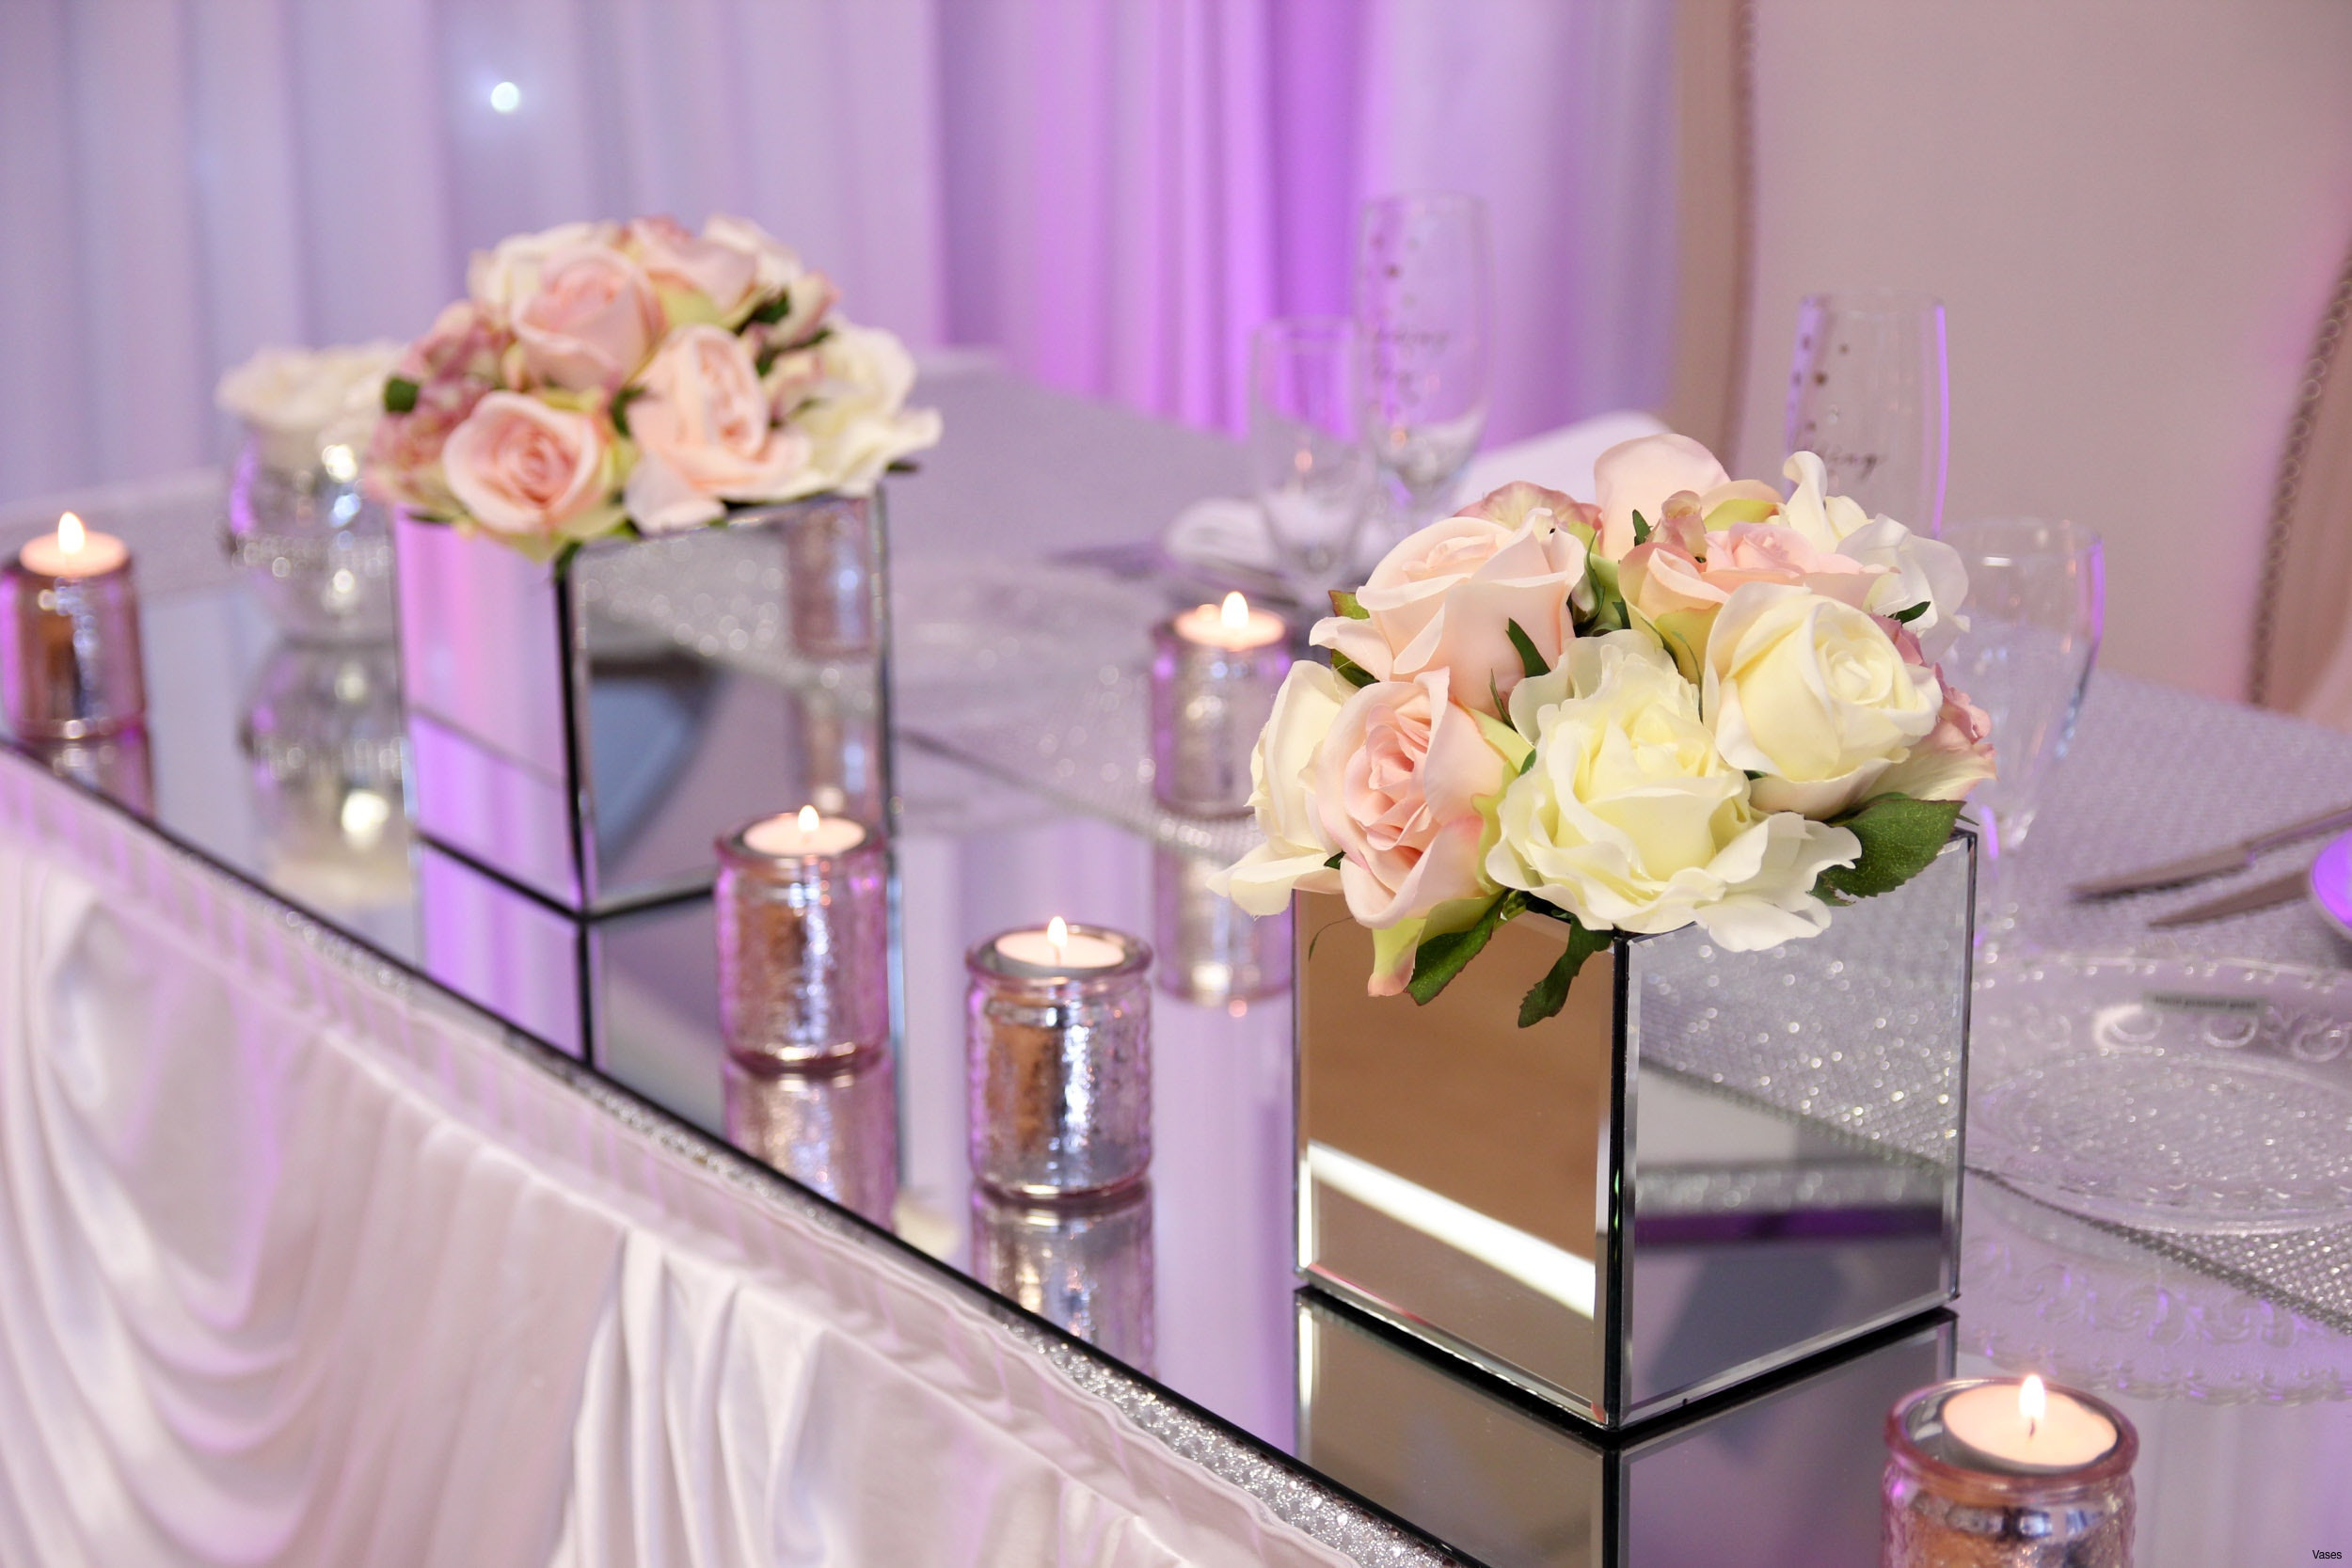 floral supply vases of wedding party favors fresh living room vases wedding inspirational h with wedding party favors awesome mirrored square vase 3h vases mirror table decorationi 0d weddings photos of